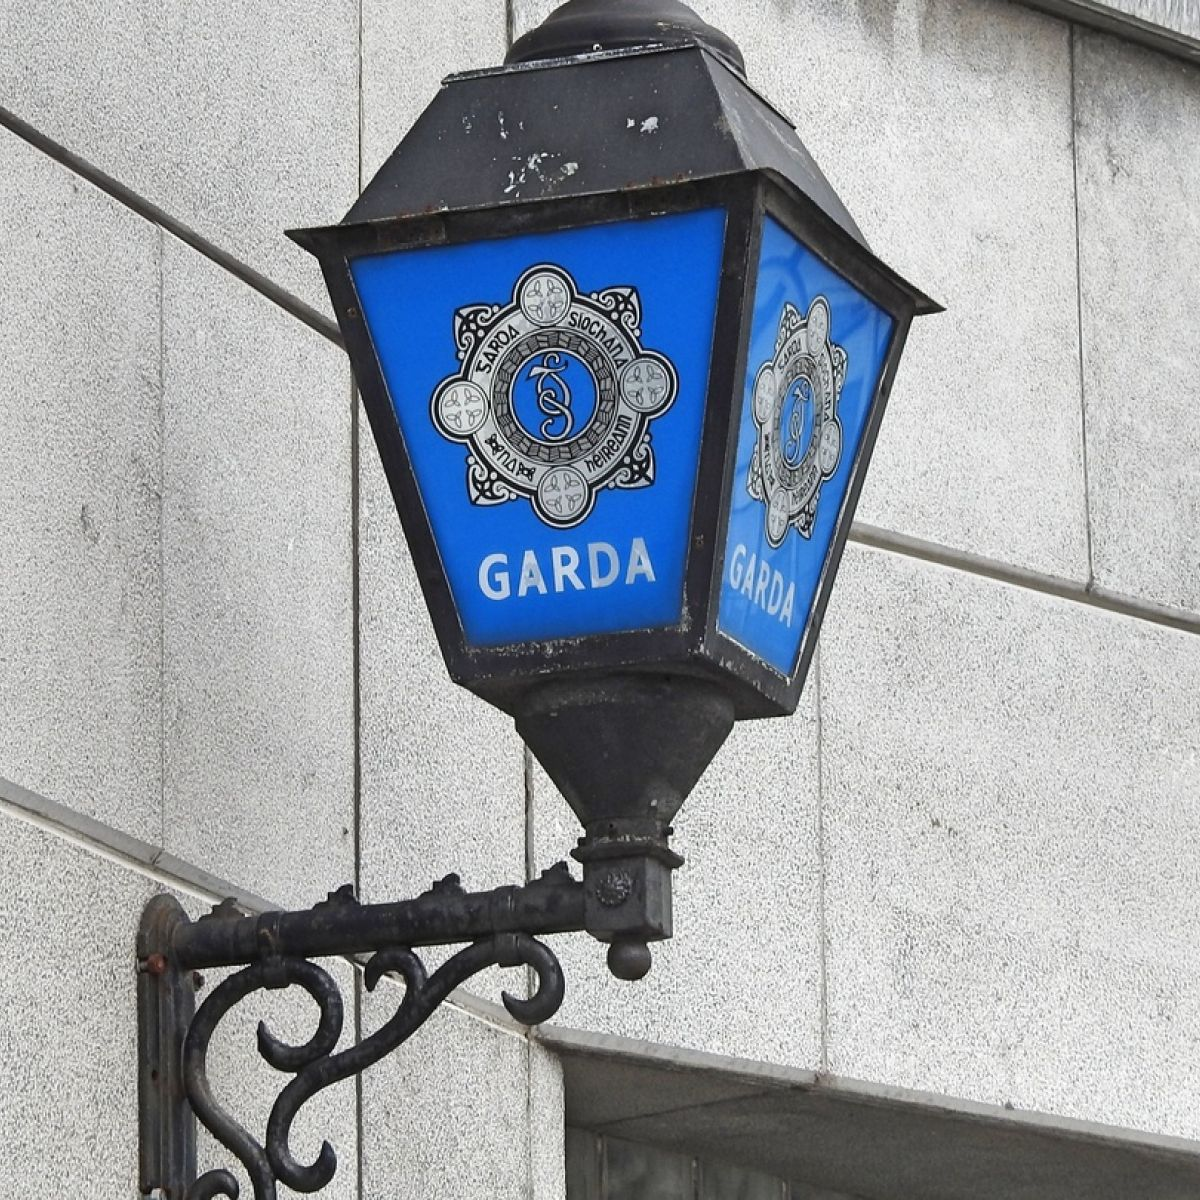 Two men accused of posing as garda in home of woman (83